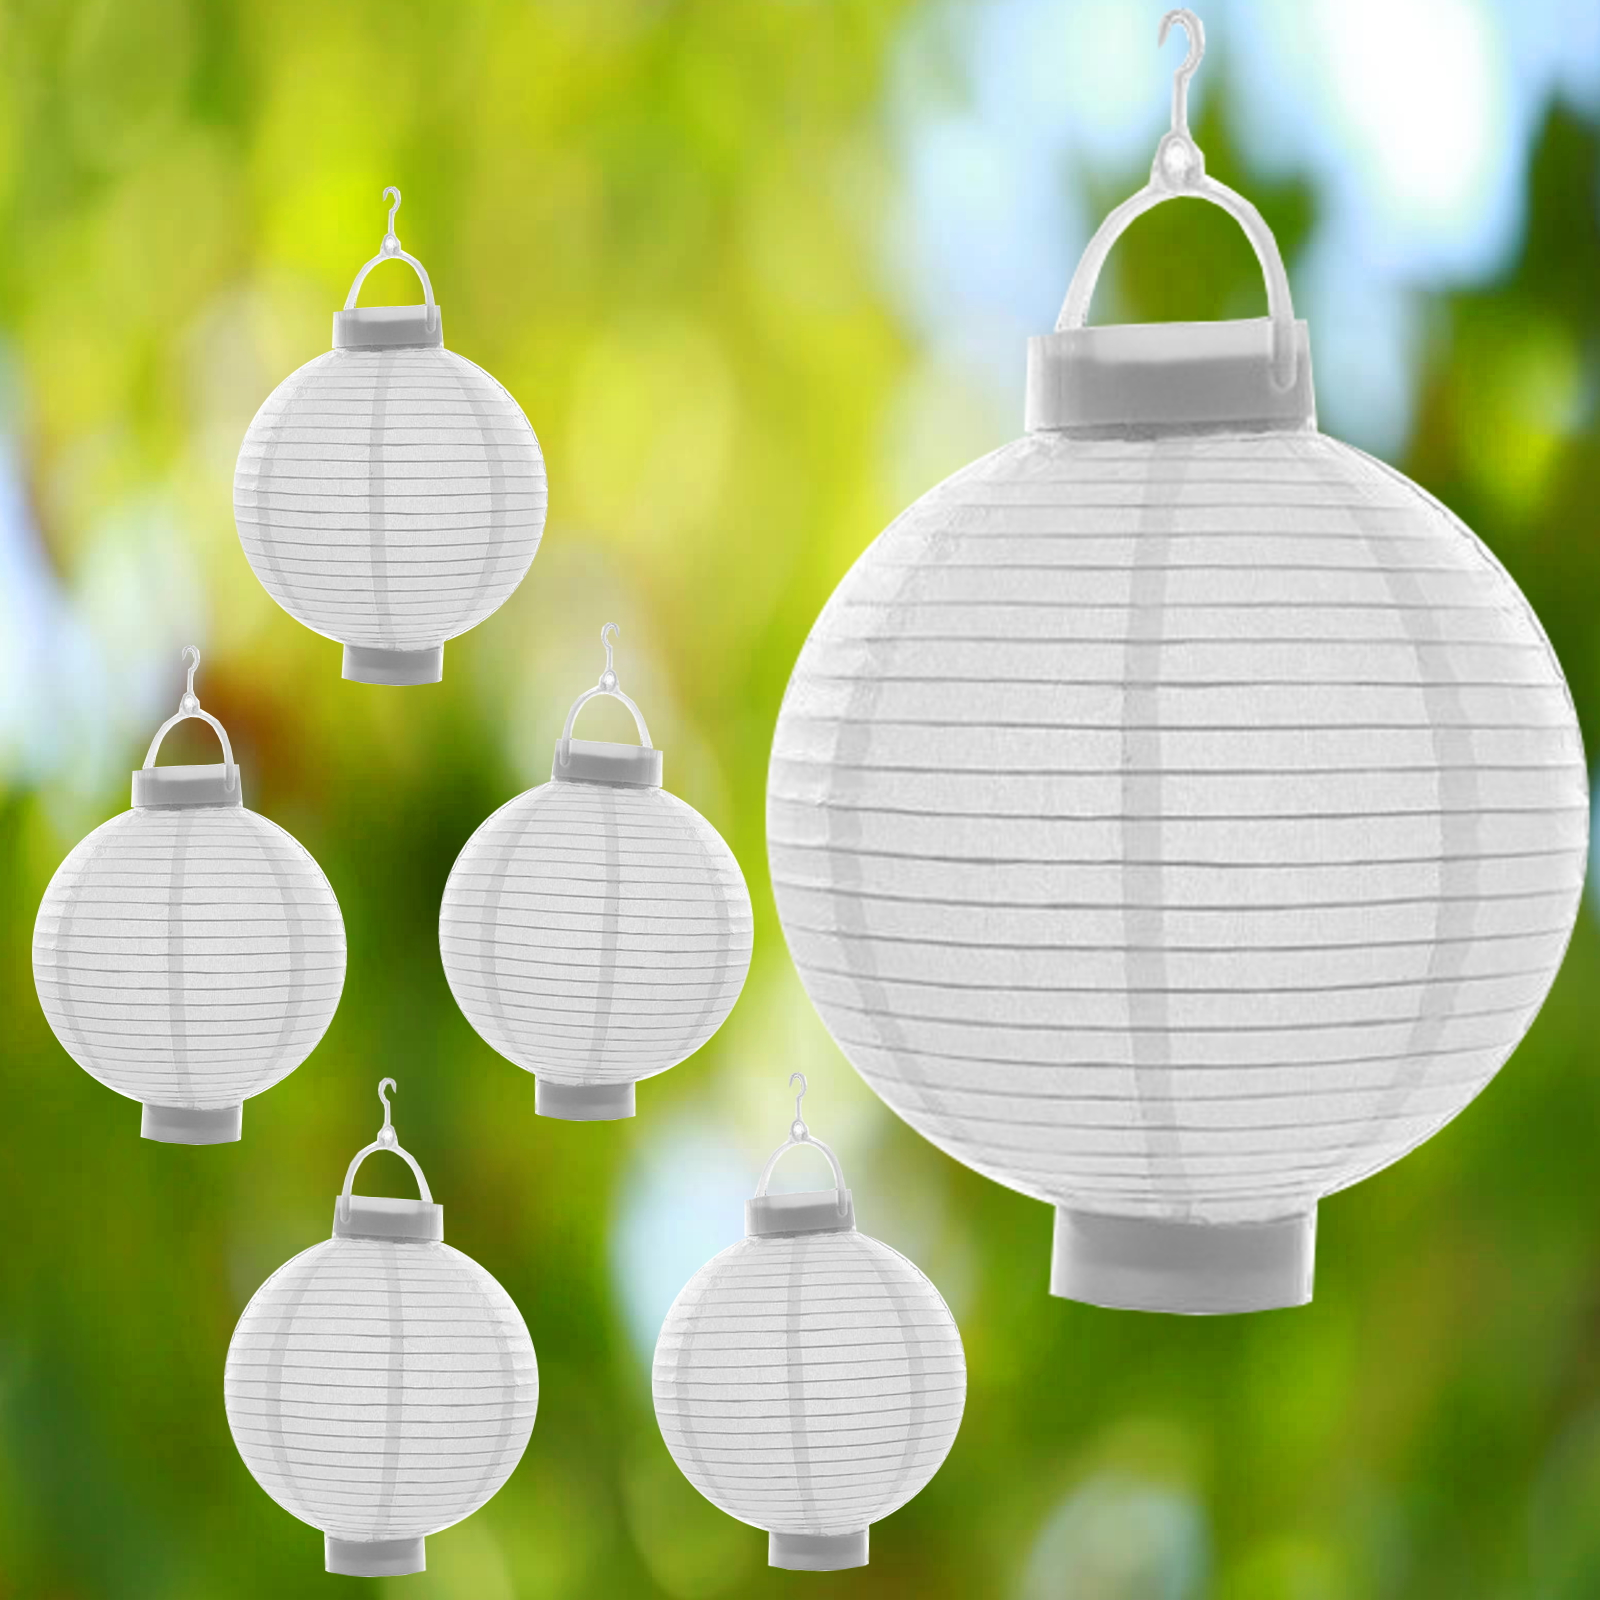 6 x wei papierlaterne led lampion lampions laterne garten ballon papierlampion ebay. Black Bedroom Furniture Sets. Home Design Ideas